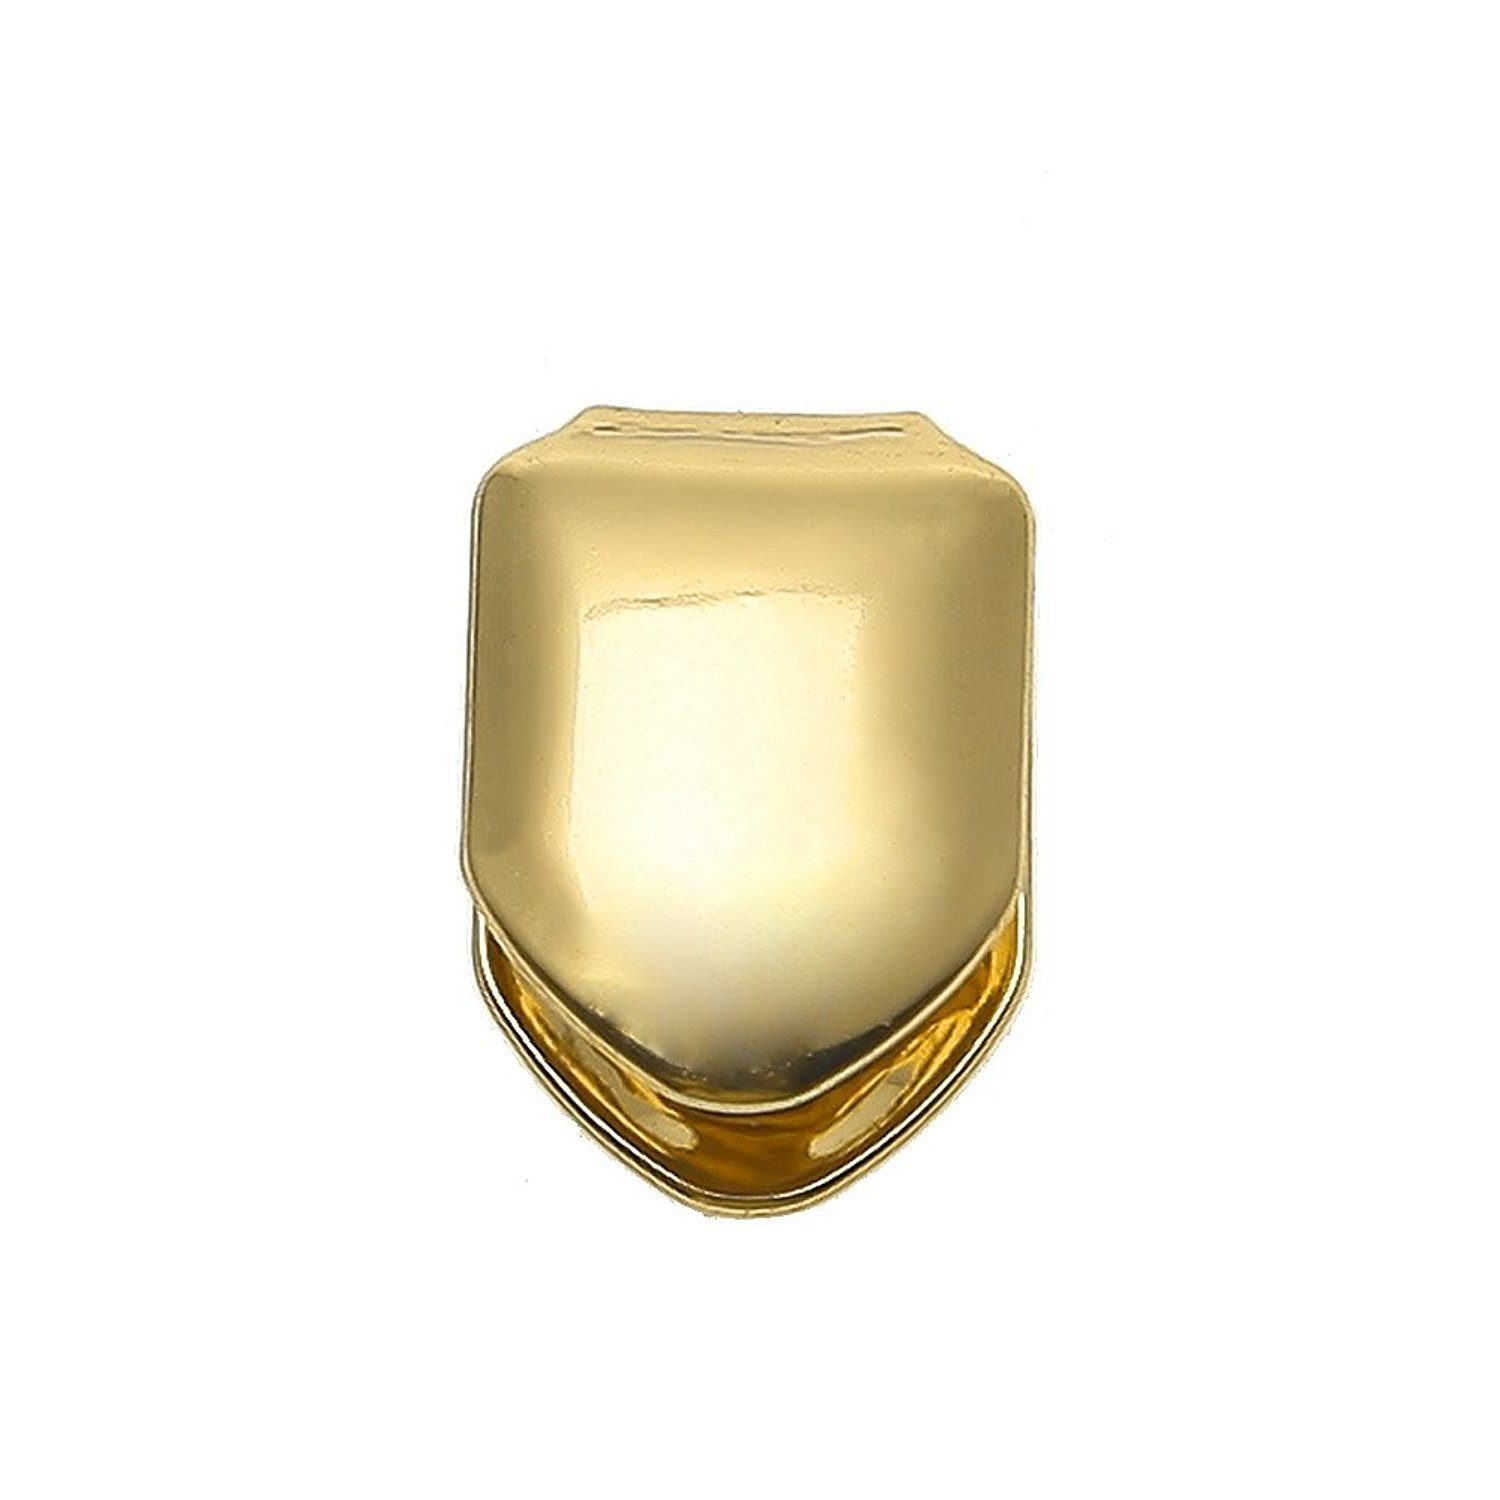 The Bling Factory 24K Gold Plated Removable Single Tooth Grill Cap + Polishing Cloth